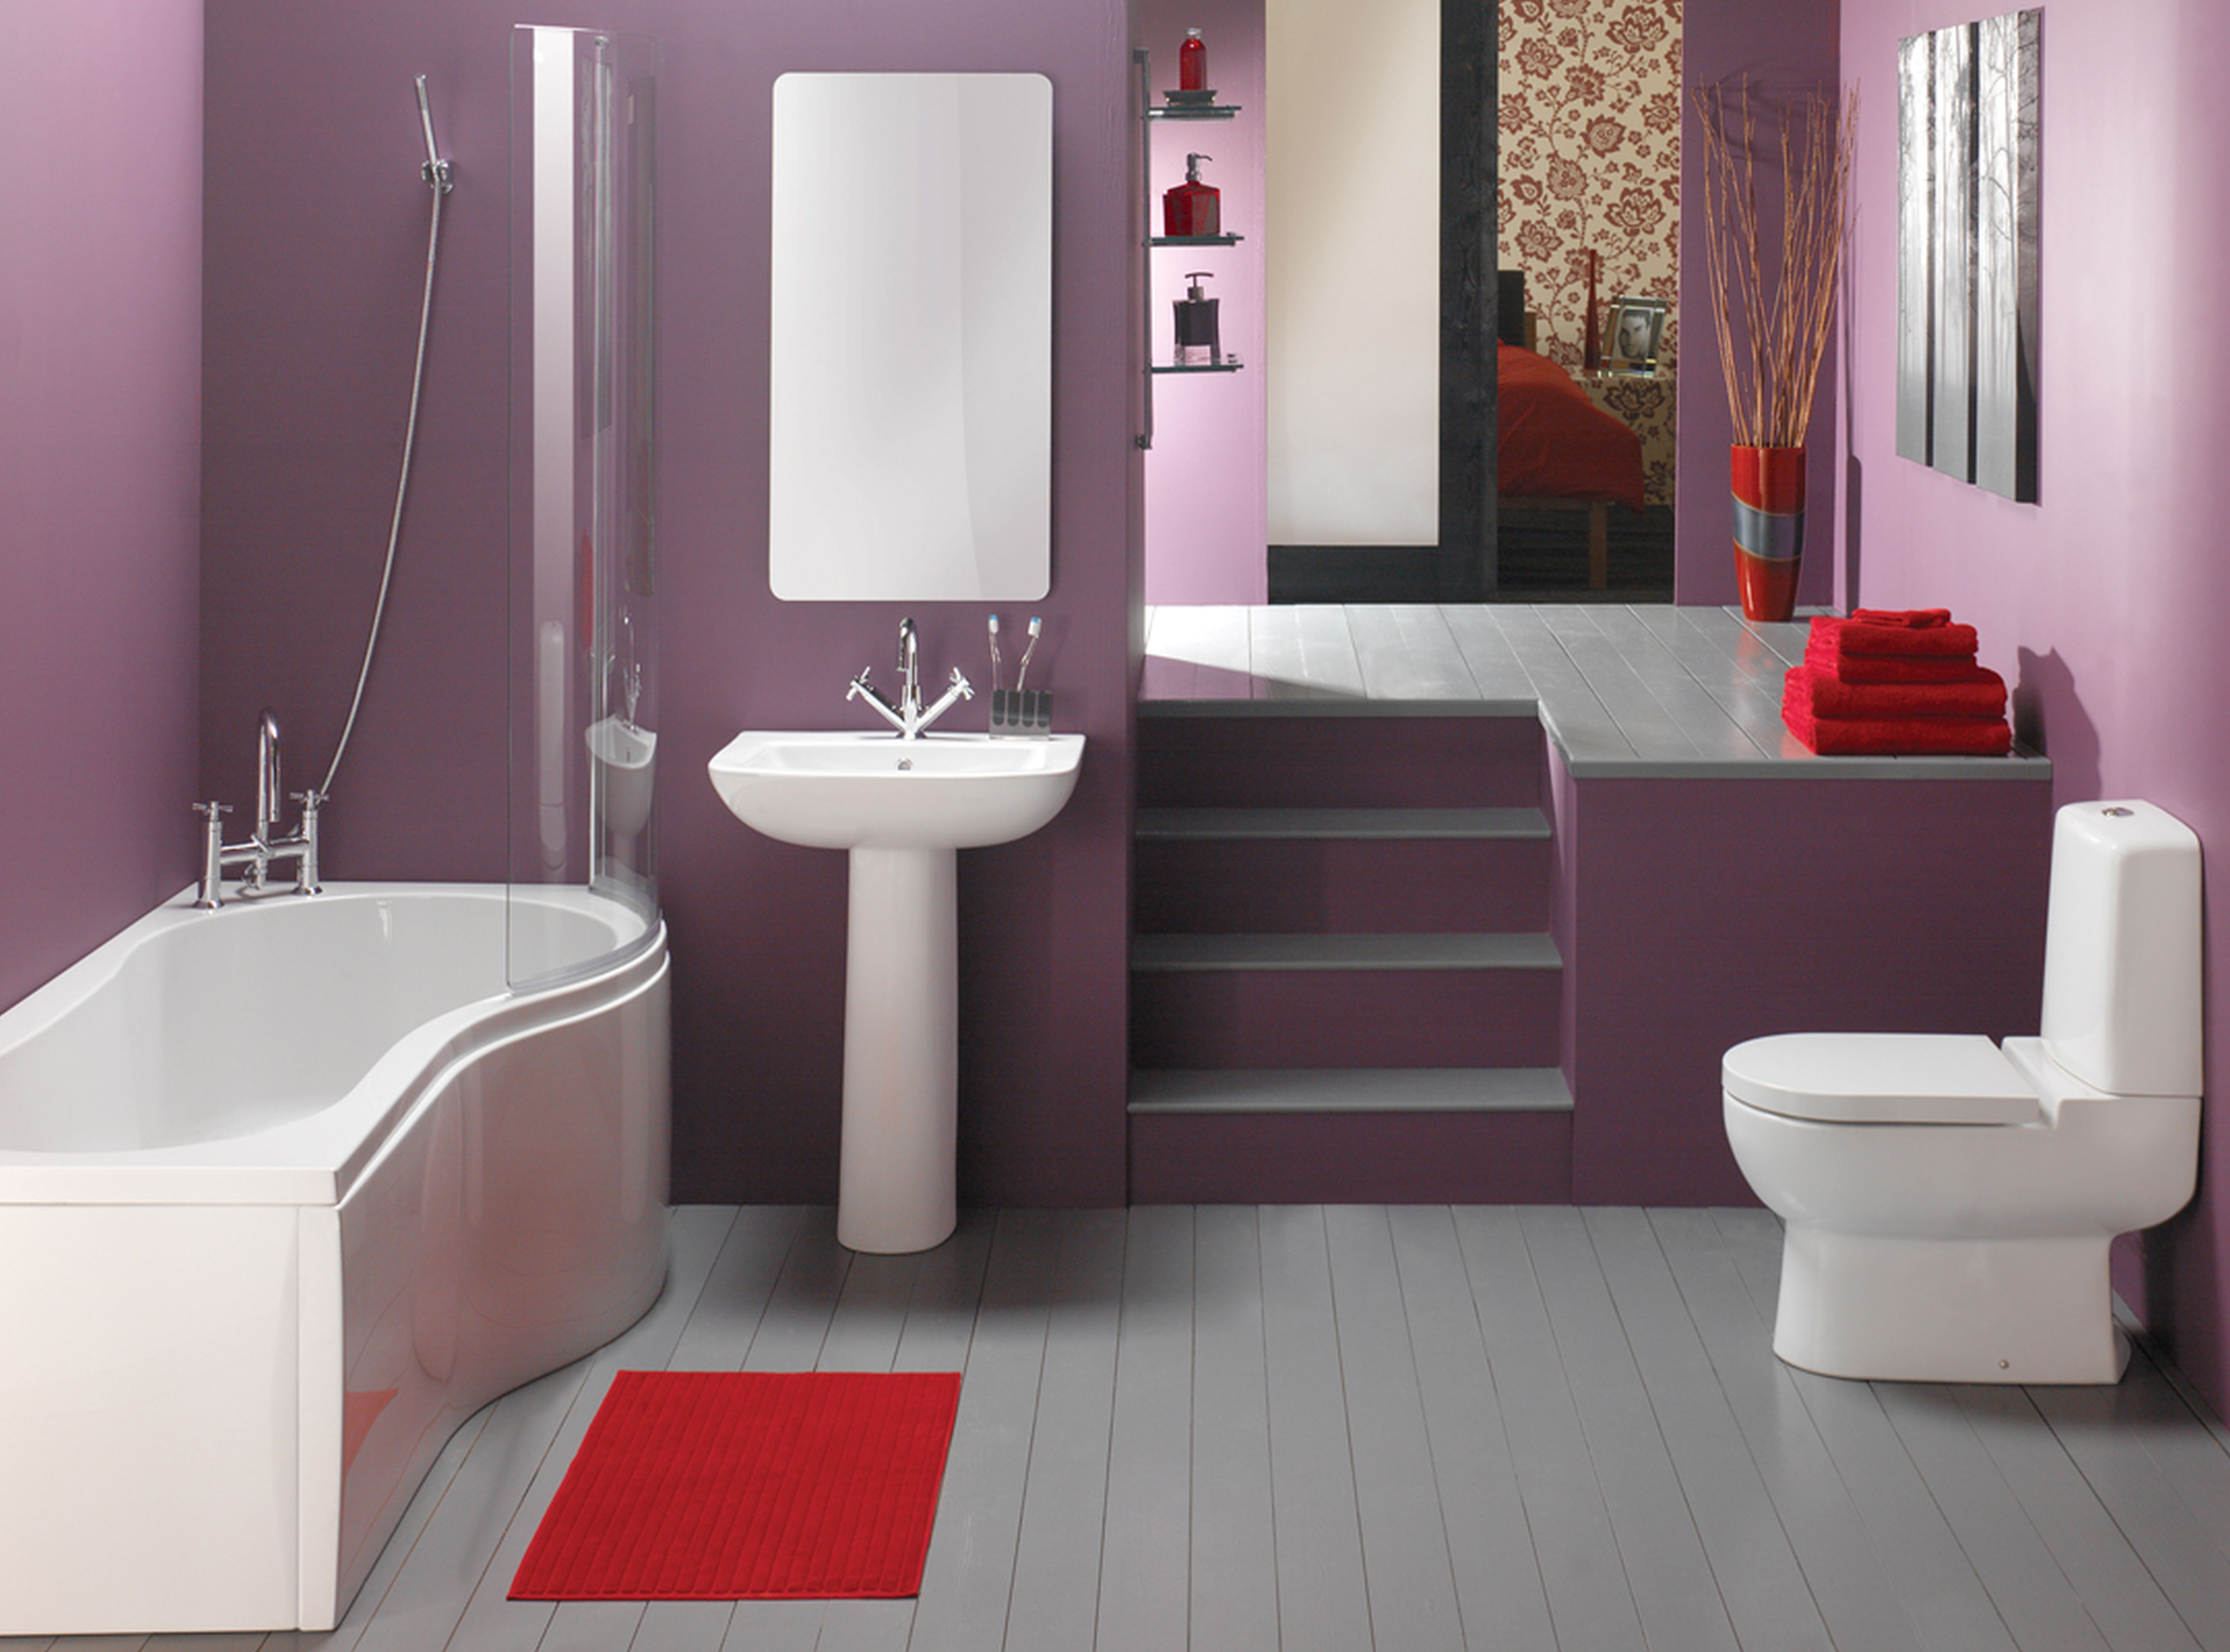 Bathroom colors themes decor ideas on pinterest shower - Bathroom Sleek Doorless Shower Design With Two Piece Toilet And Pedestal Sink In Minimalist Colourful Bathroom Sensational Bathroom Interior Idea With